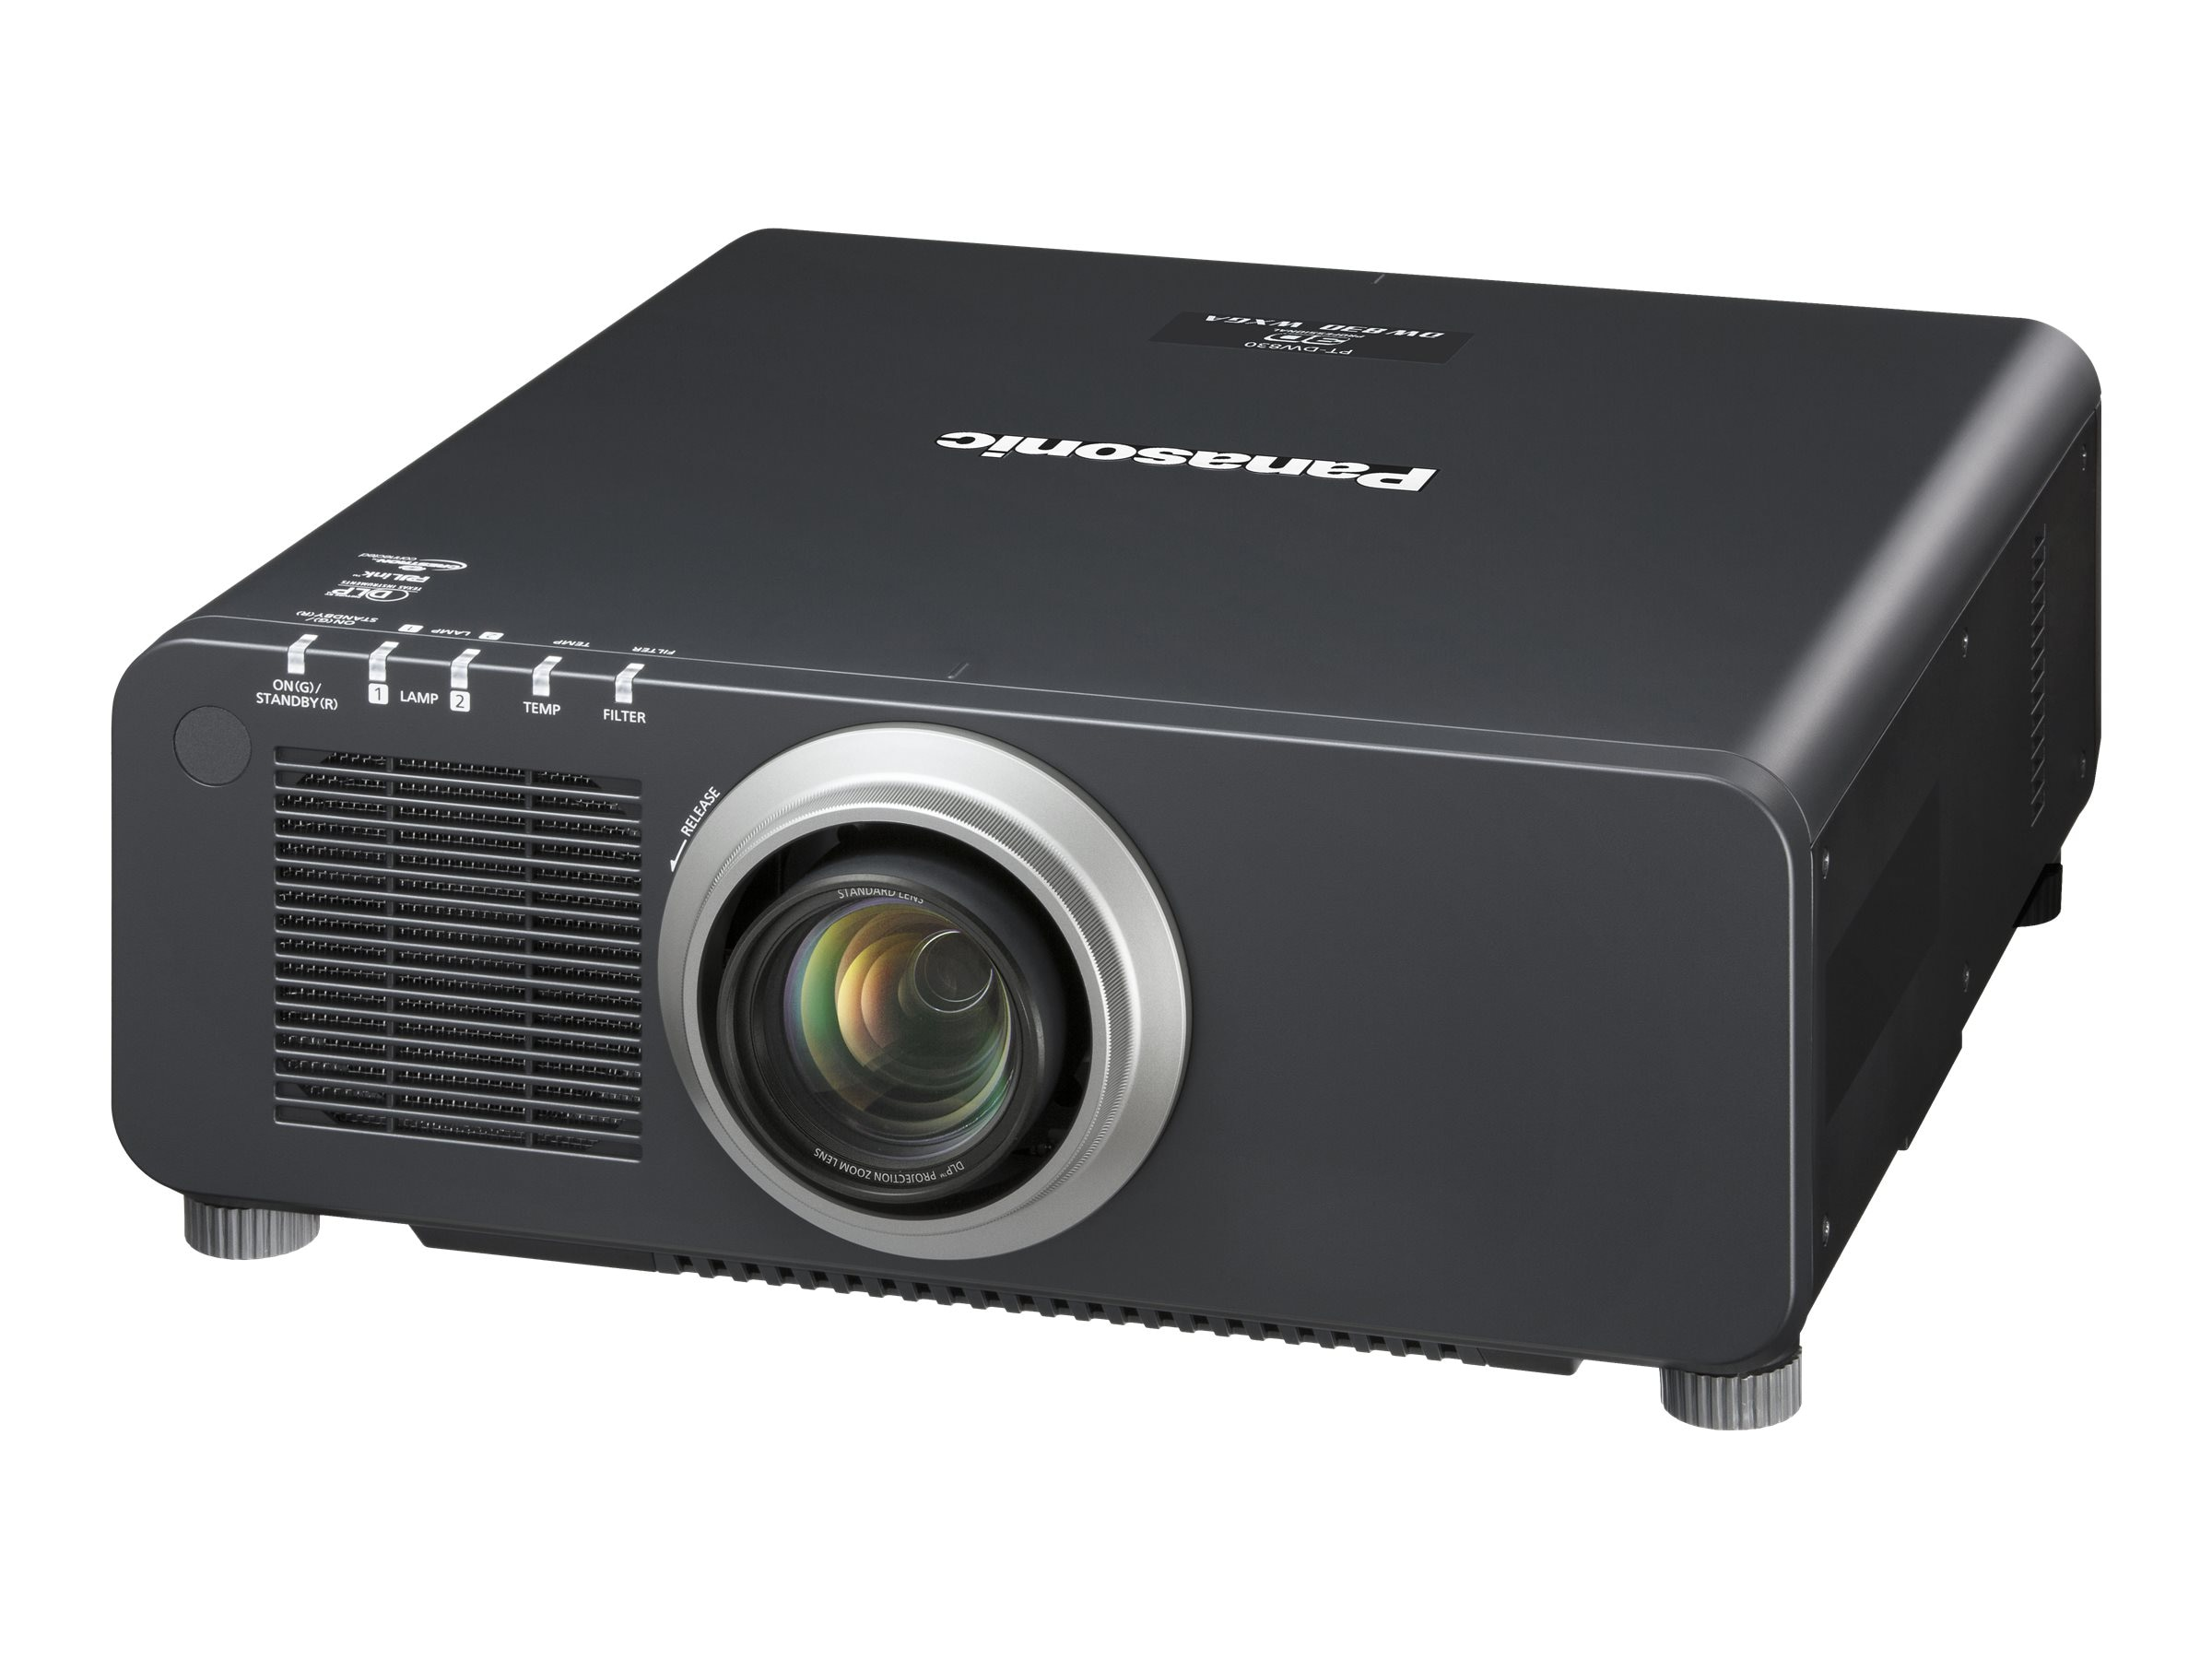 Panasonic PT-DW830UK Image 1